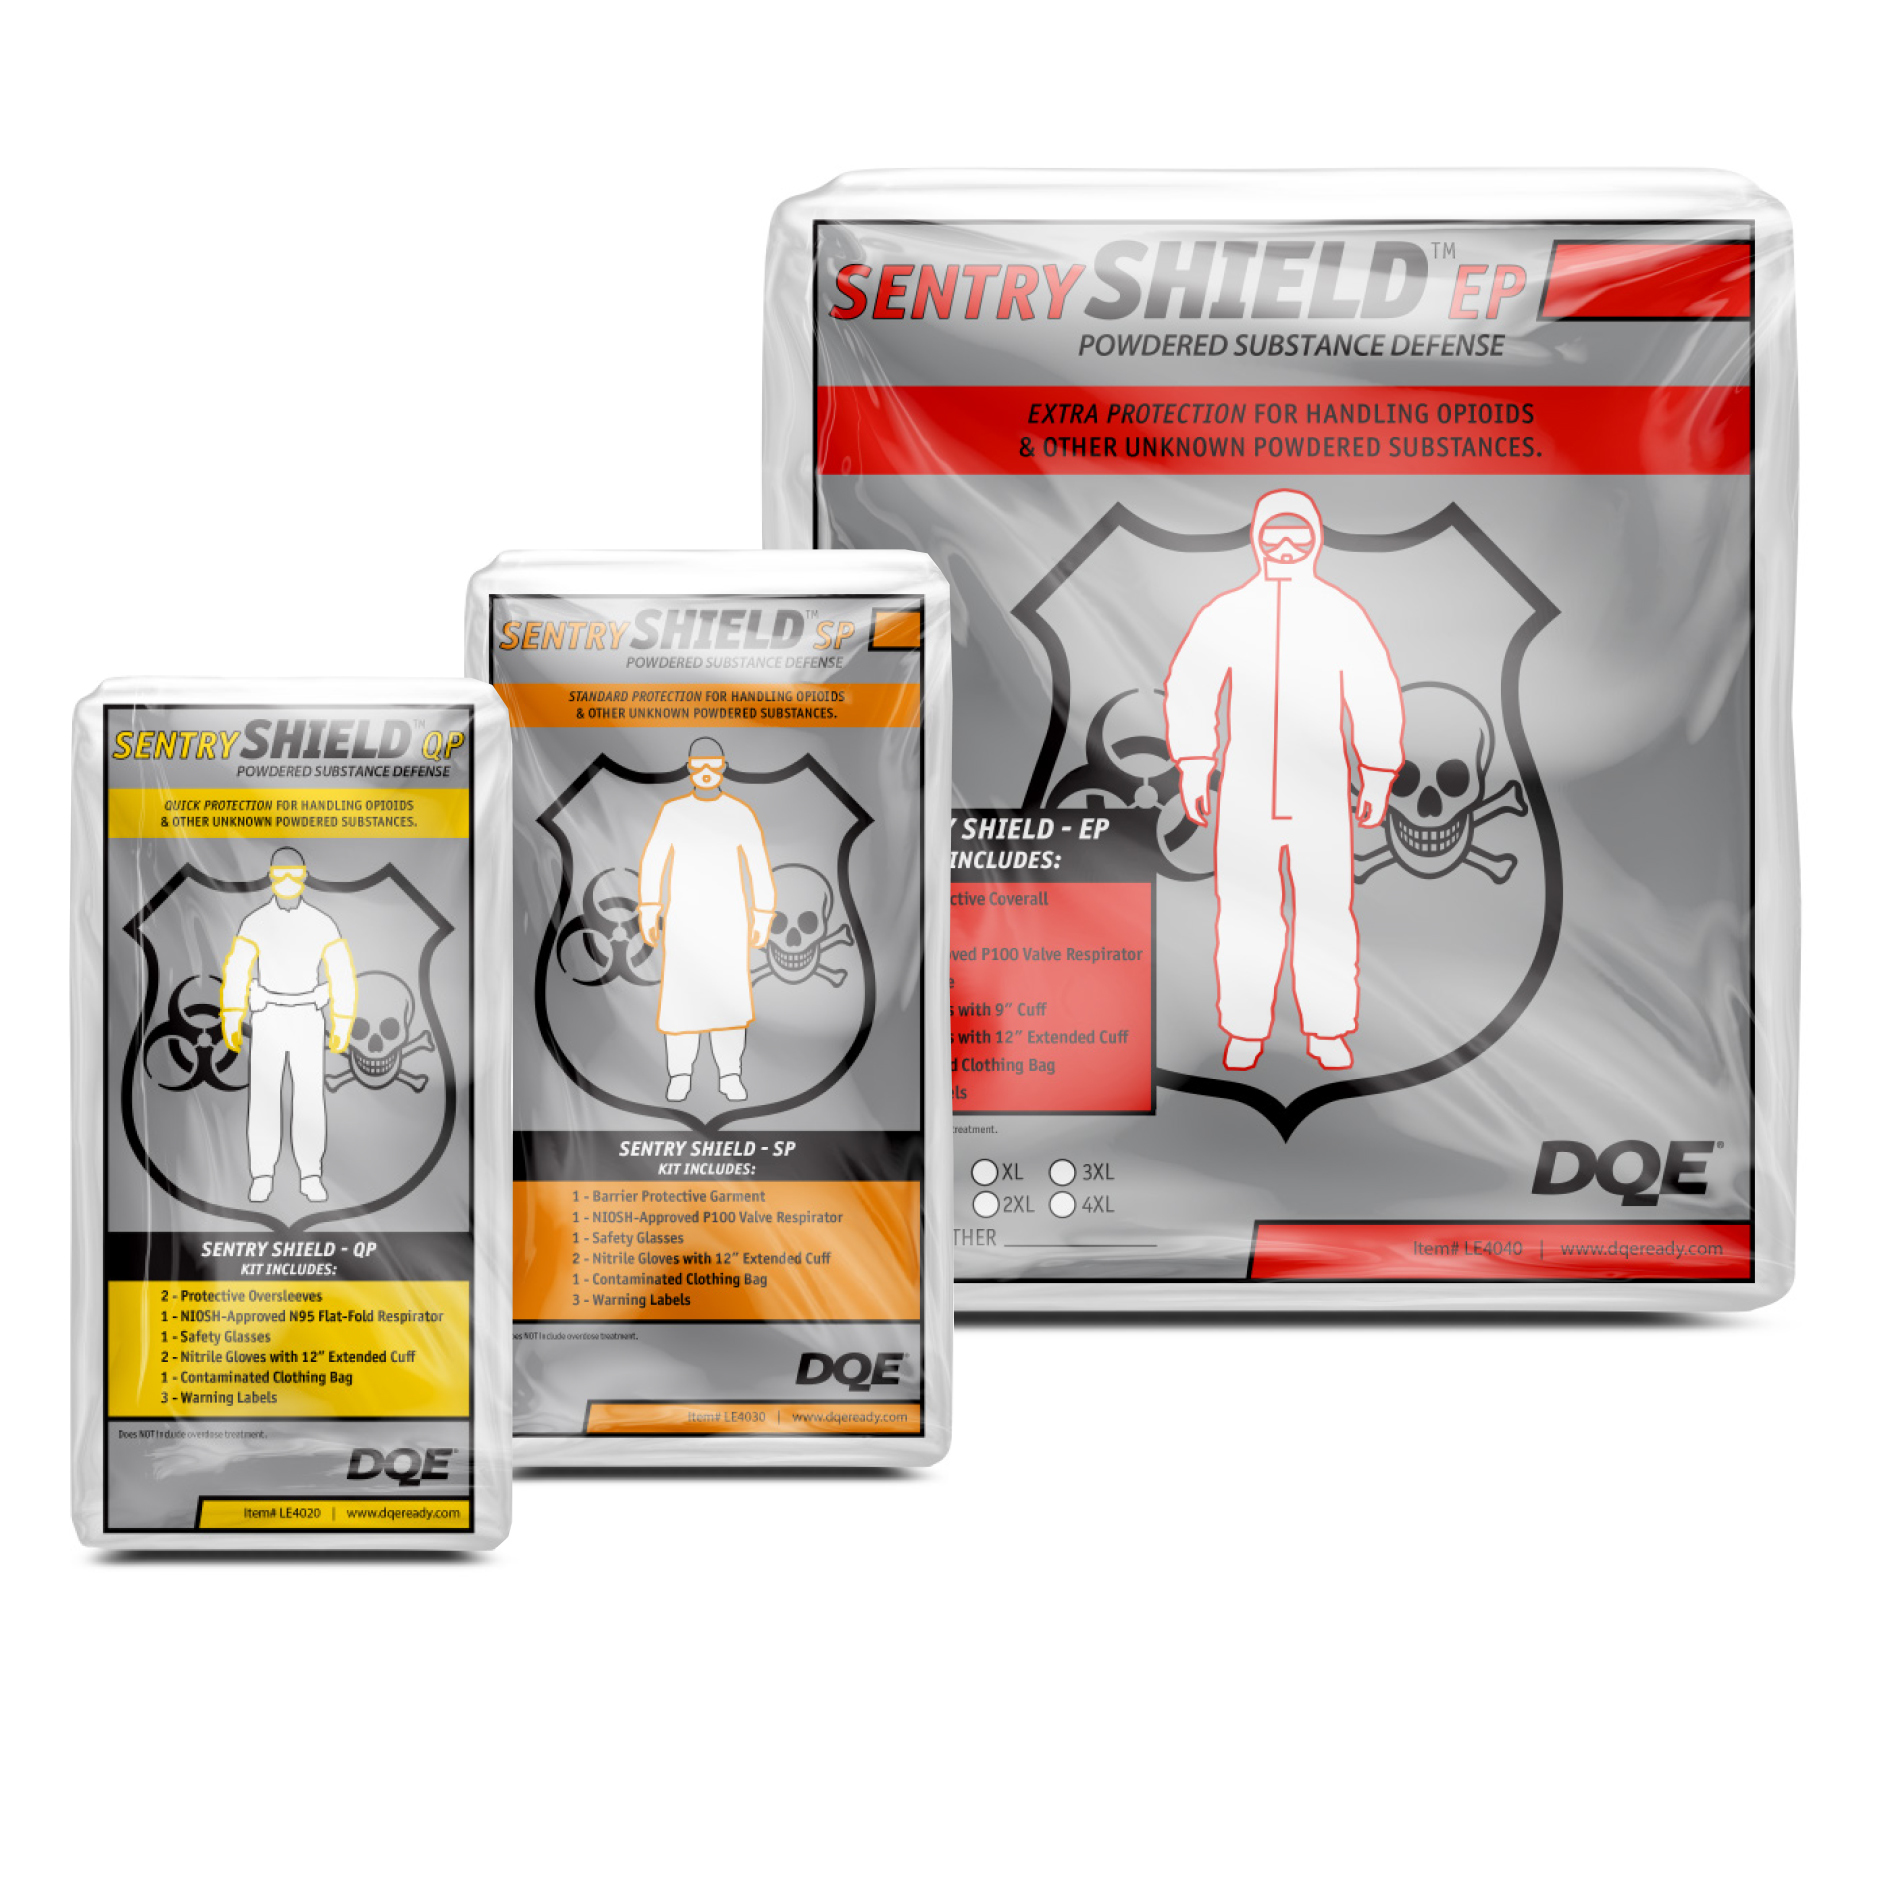 Shop Opioid PPE Kits at DQE